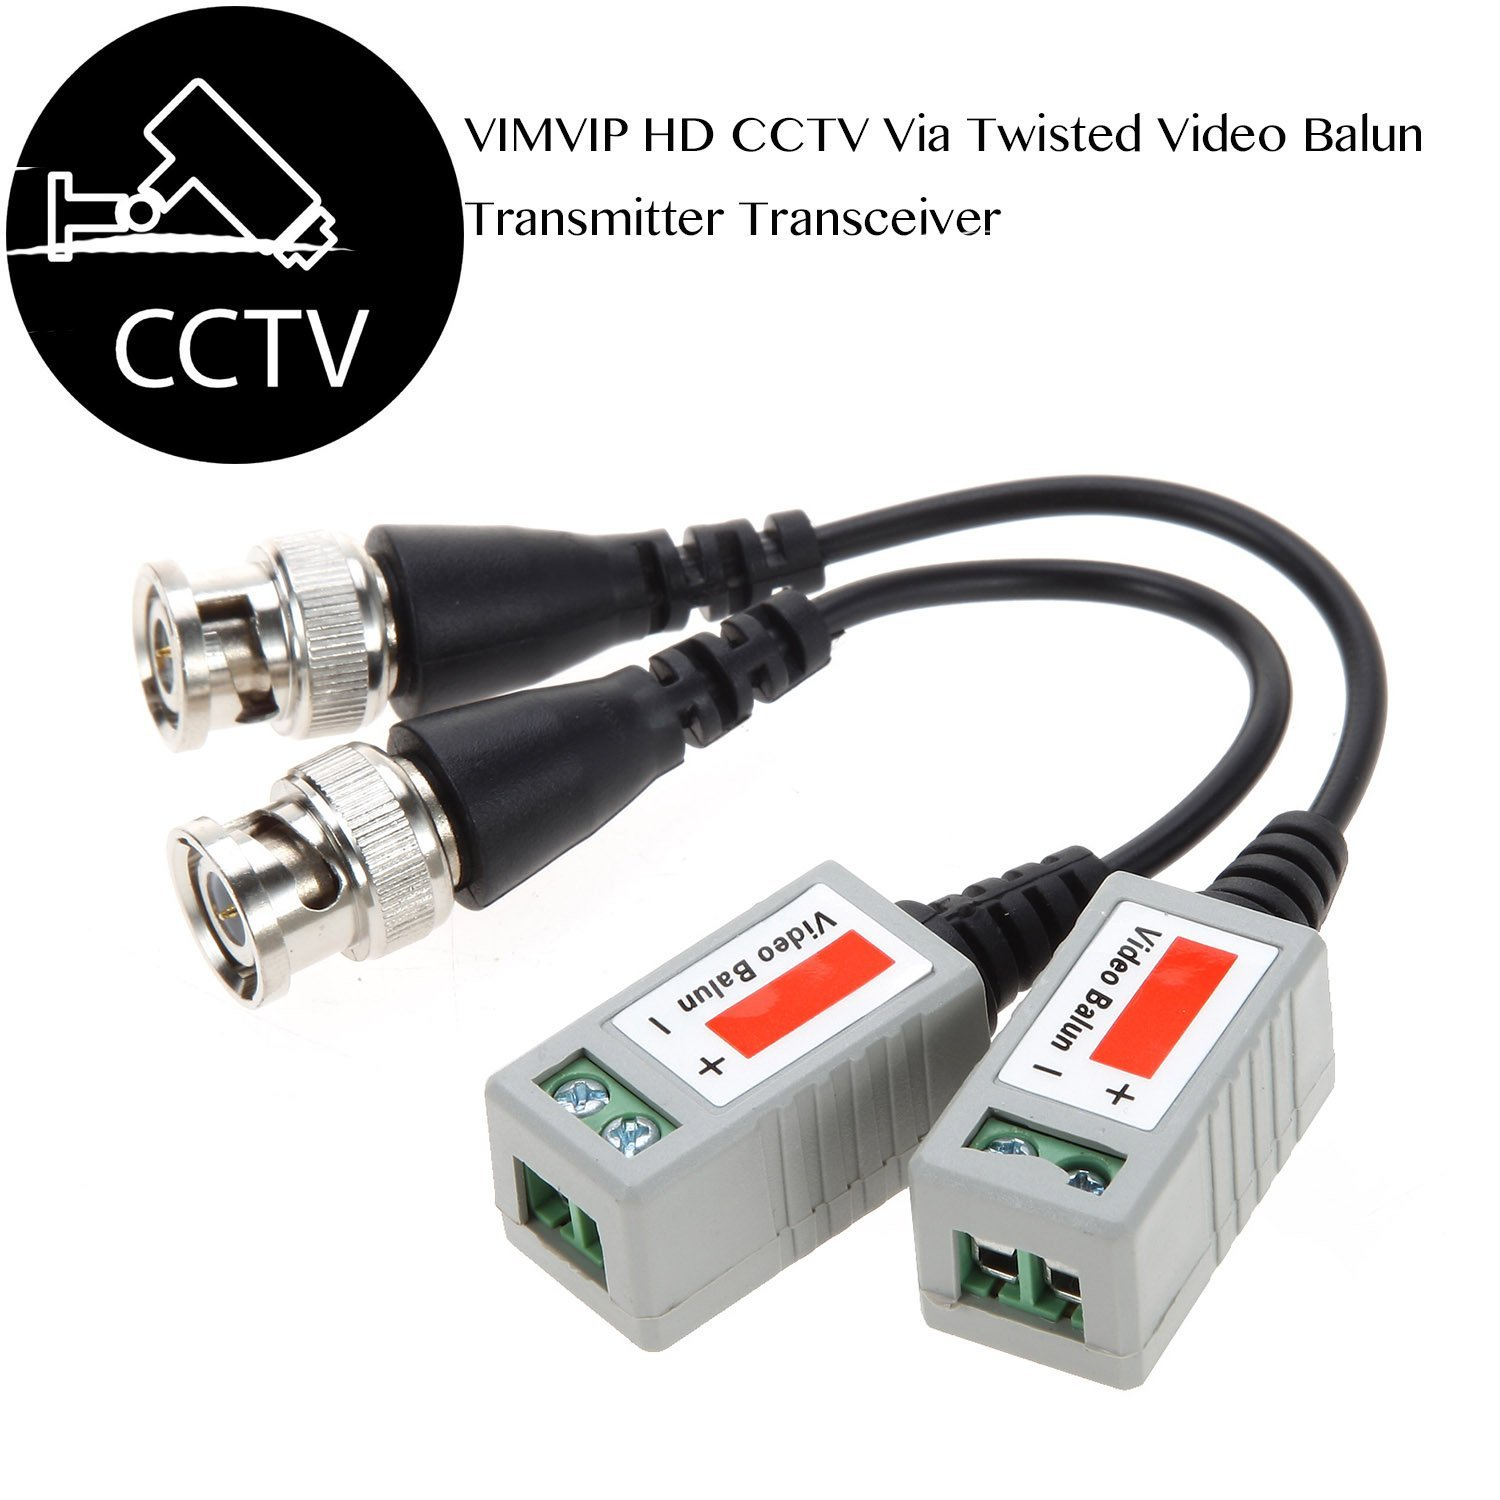 CCTV Camera Passive Video Balun BNC Connector Coaxial Cable Adapter For Security CCTV Analog Camera DVR Systems